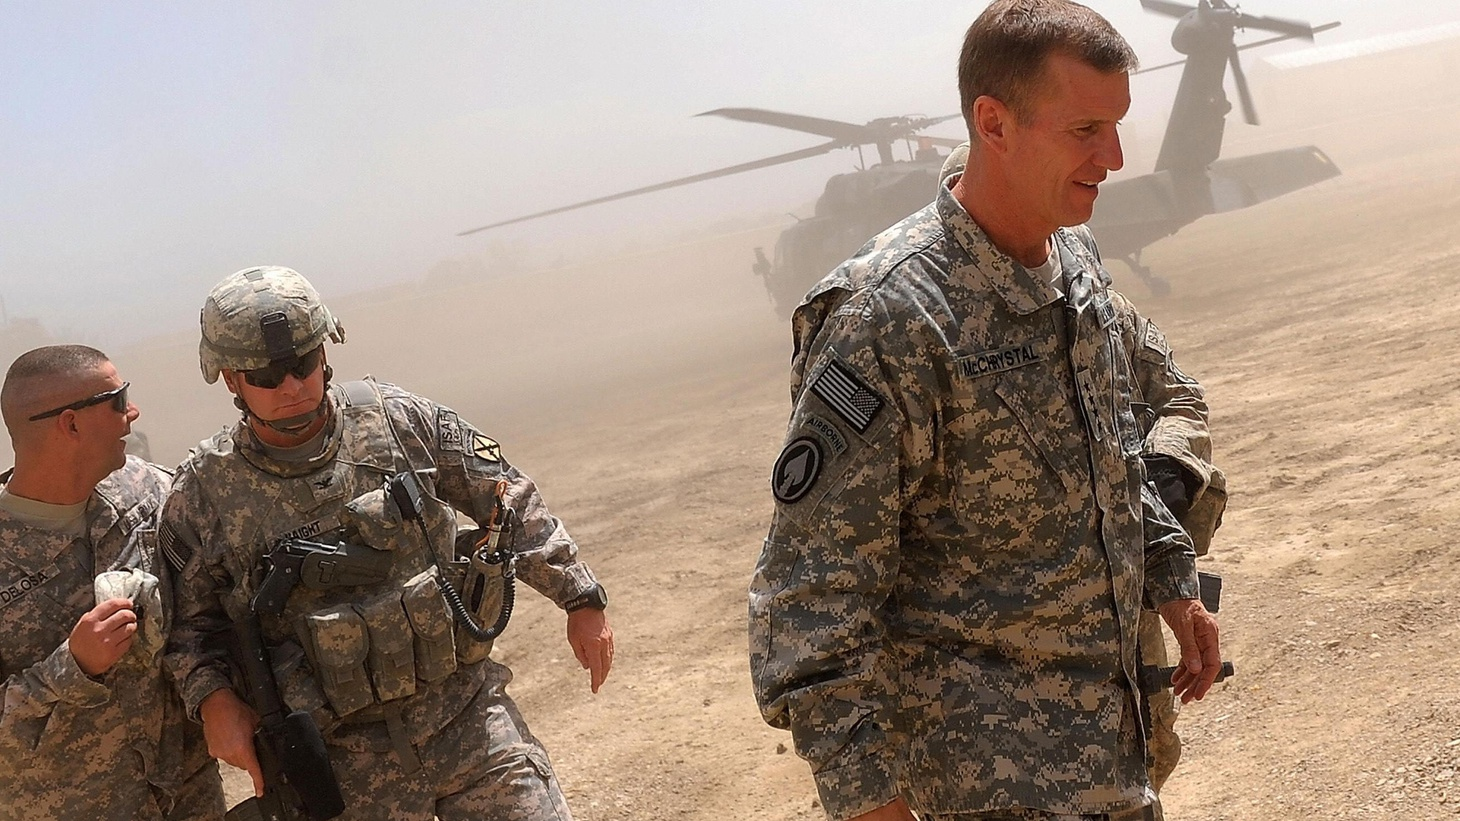 """In deciding what to do in Afghanistan, President Obama faces more than the question of how many troops. It's the clout of the military in a society where the civilian government is supposed to be in charge. After all, it took a former general, President Dwight Eisenhower, to coin the term """"military-industrial complex."""" Also, a run-off election for Afghanistan, and the boy who wasn't in the balloon after all."""